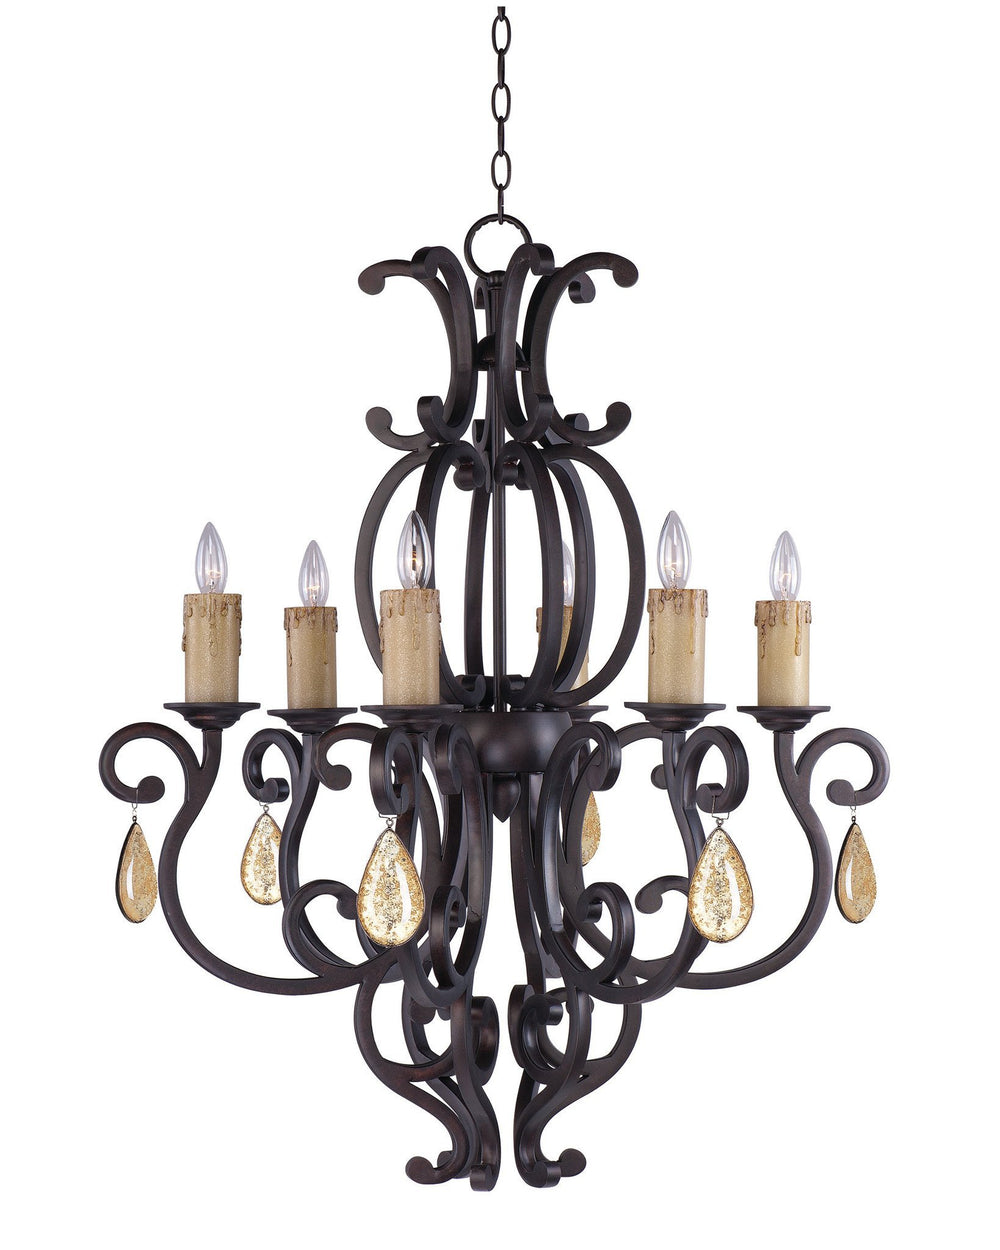 Maxim CRY09431005CU/ Richmond 6-Light Chandelier with Crystals & Shades